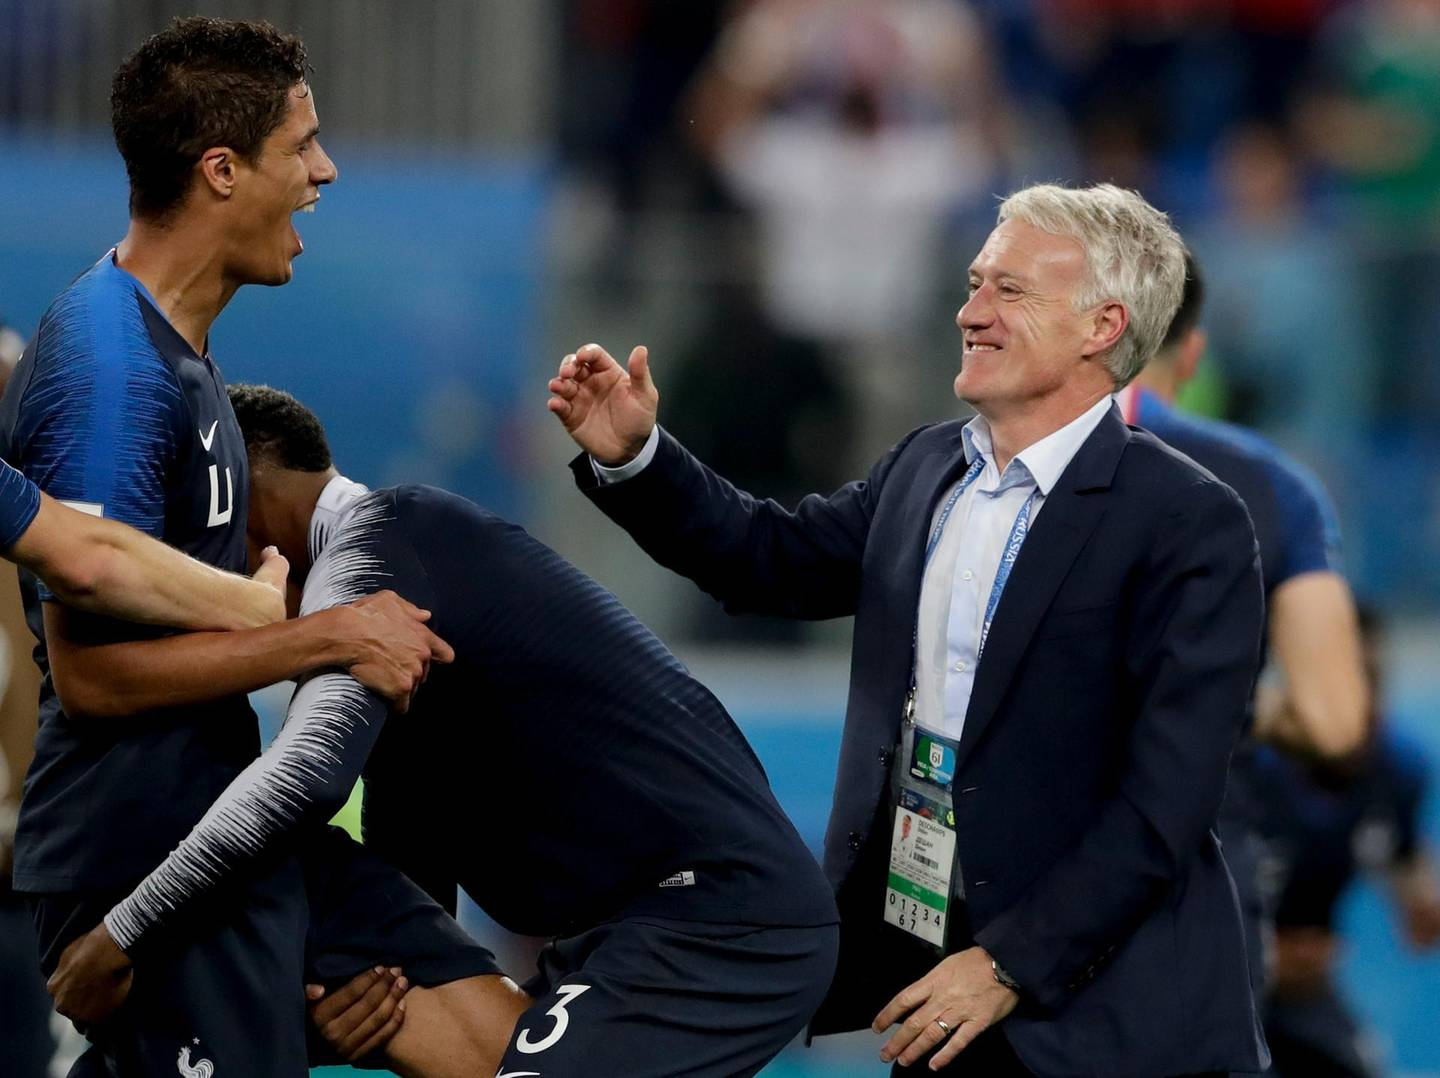 France head coach Didier Deschamps, right, and Raphael Varane celebrate at the end of the semifinal match between France and Belgium at the 2018 soccer World Cup in the St. Petersburg Stadium, in St. Petersburg, Russia, Tuesday, July 10, 2018. France won 1-0. (AP Photo/Petr David Josek)